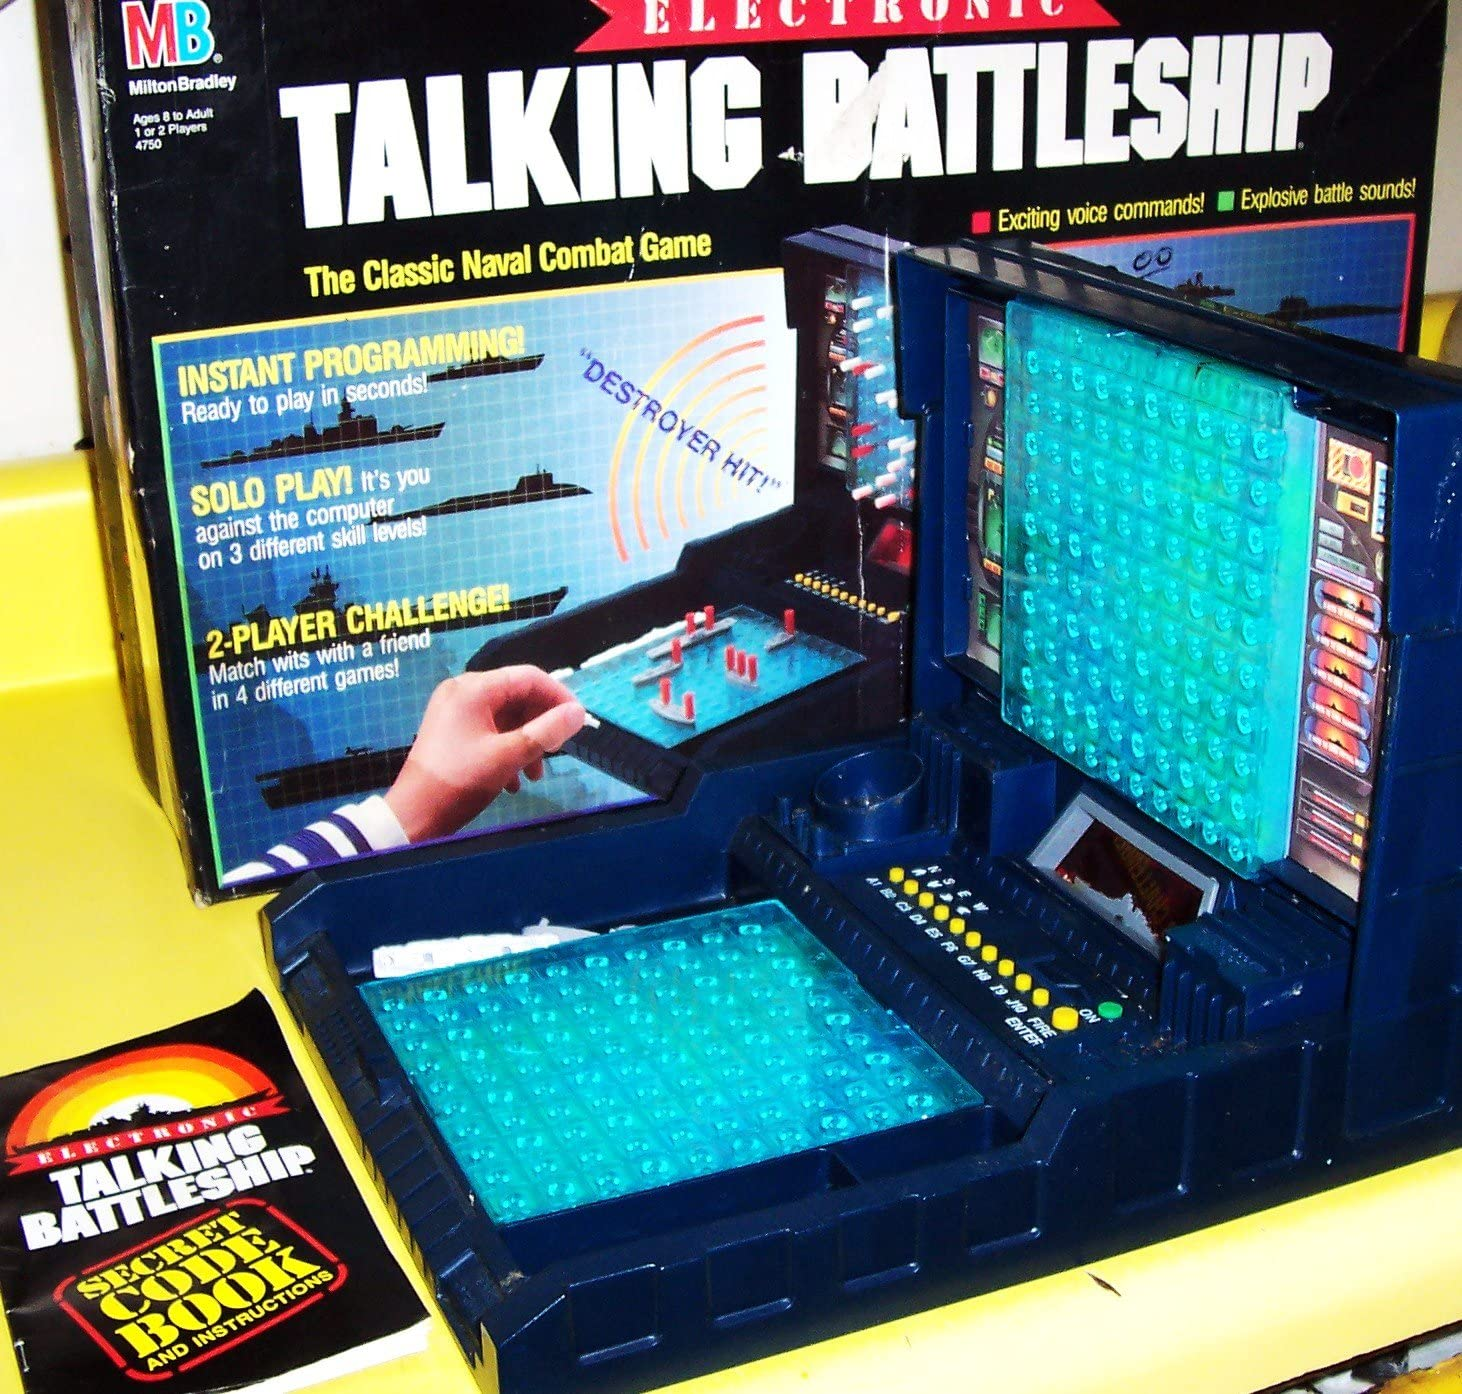 Electronic Talking Battleship Game Cheaper Than Retail Price Buy Clothing Accessories And Lifestyle Products For Women Men